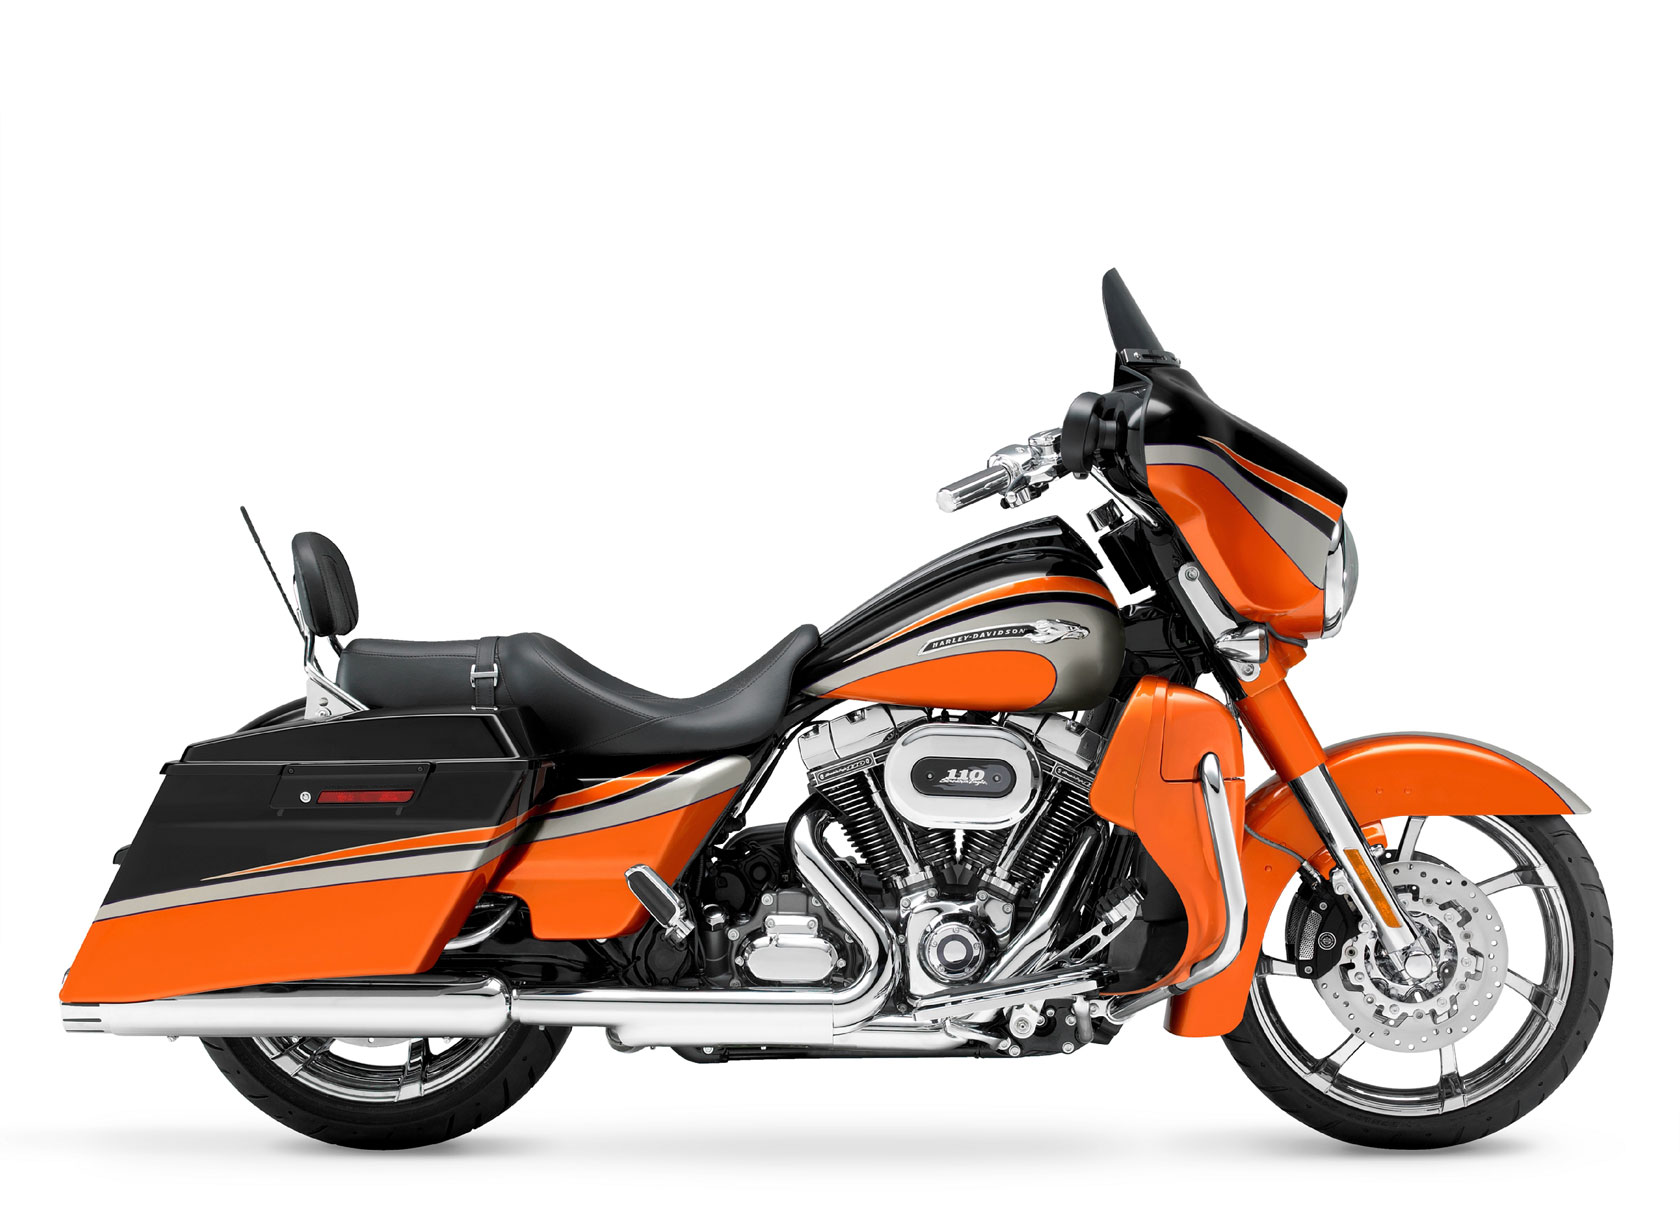 harley davidson cvo street glide specs 2010 2011 autoevolution. Black Bedroom Furniture Sets. Home Design Ideas